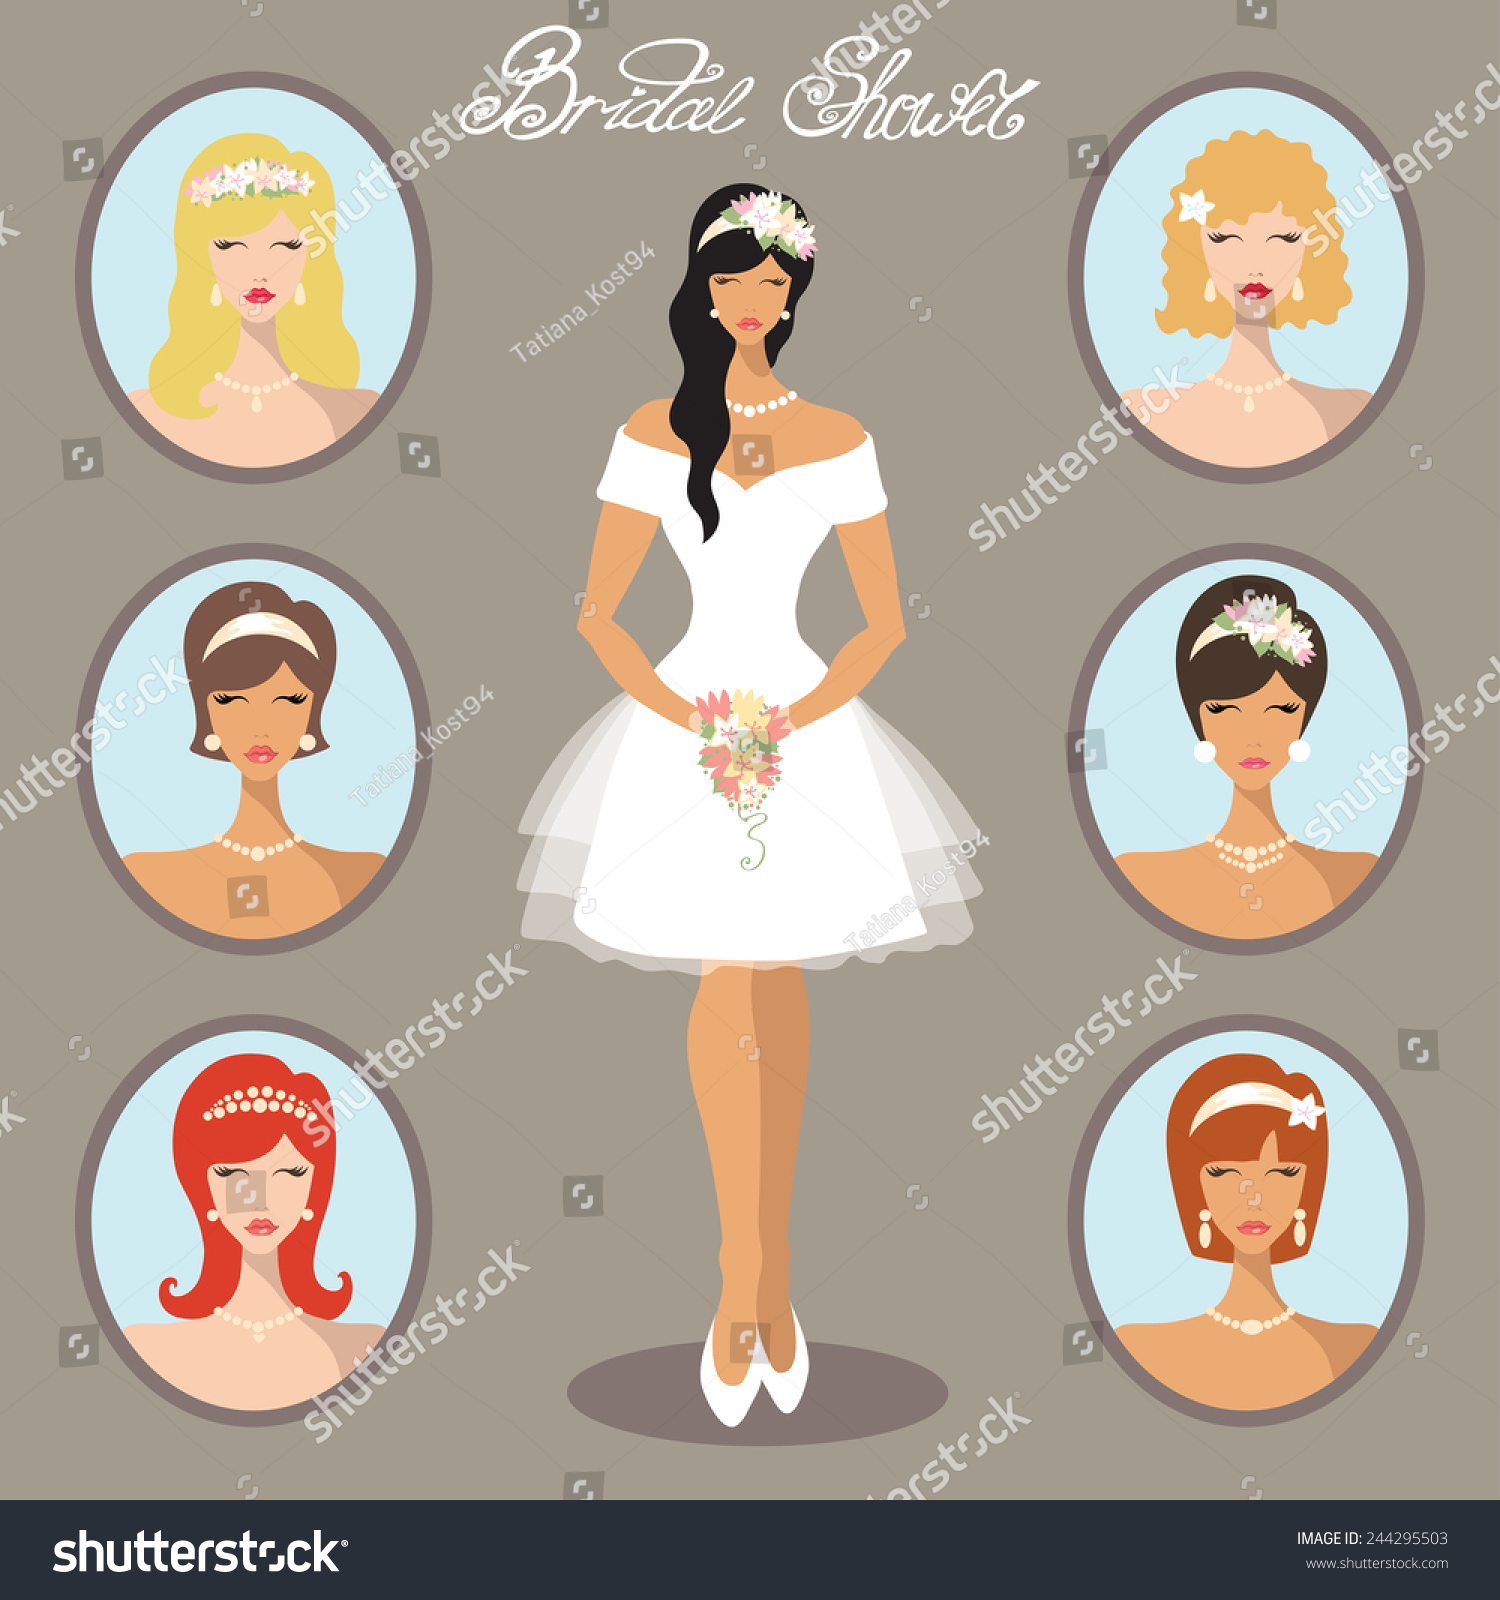 lovely bride hairstyleflat icons girlfemalewomen portraits different